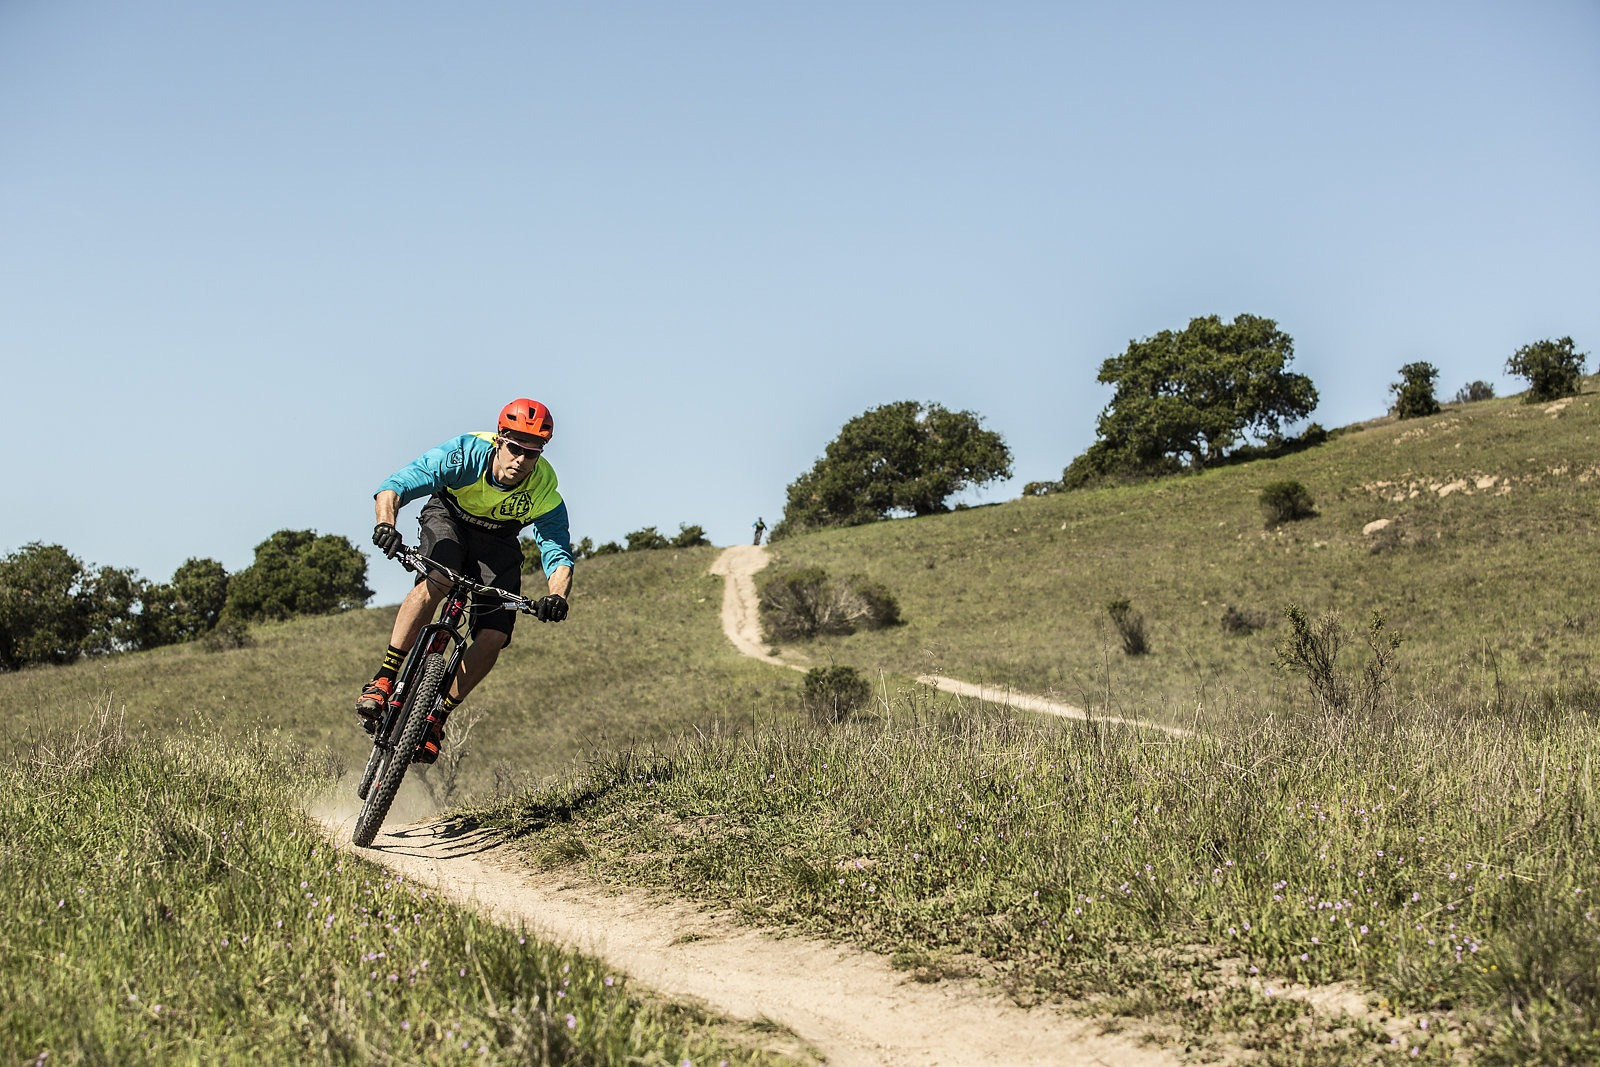 Freehub's First Ride: RockShox RS-1 Fork and SRAM Guide